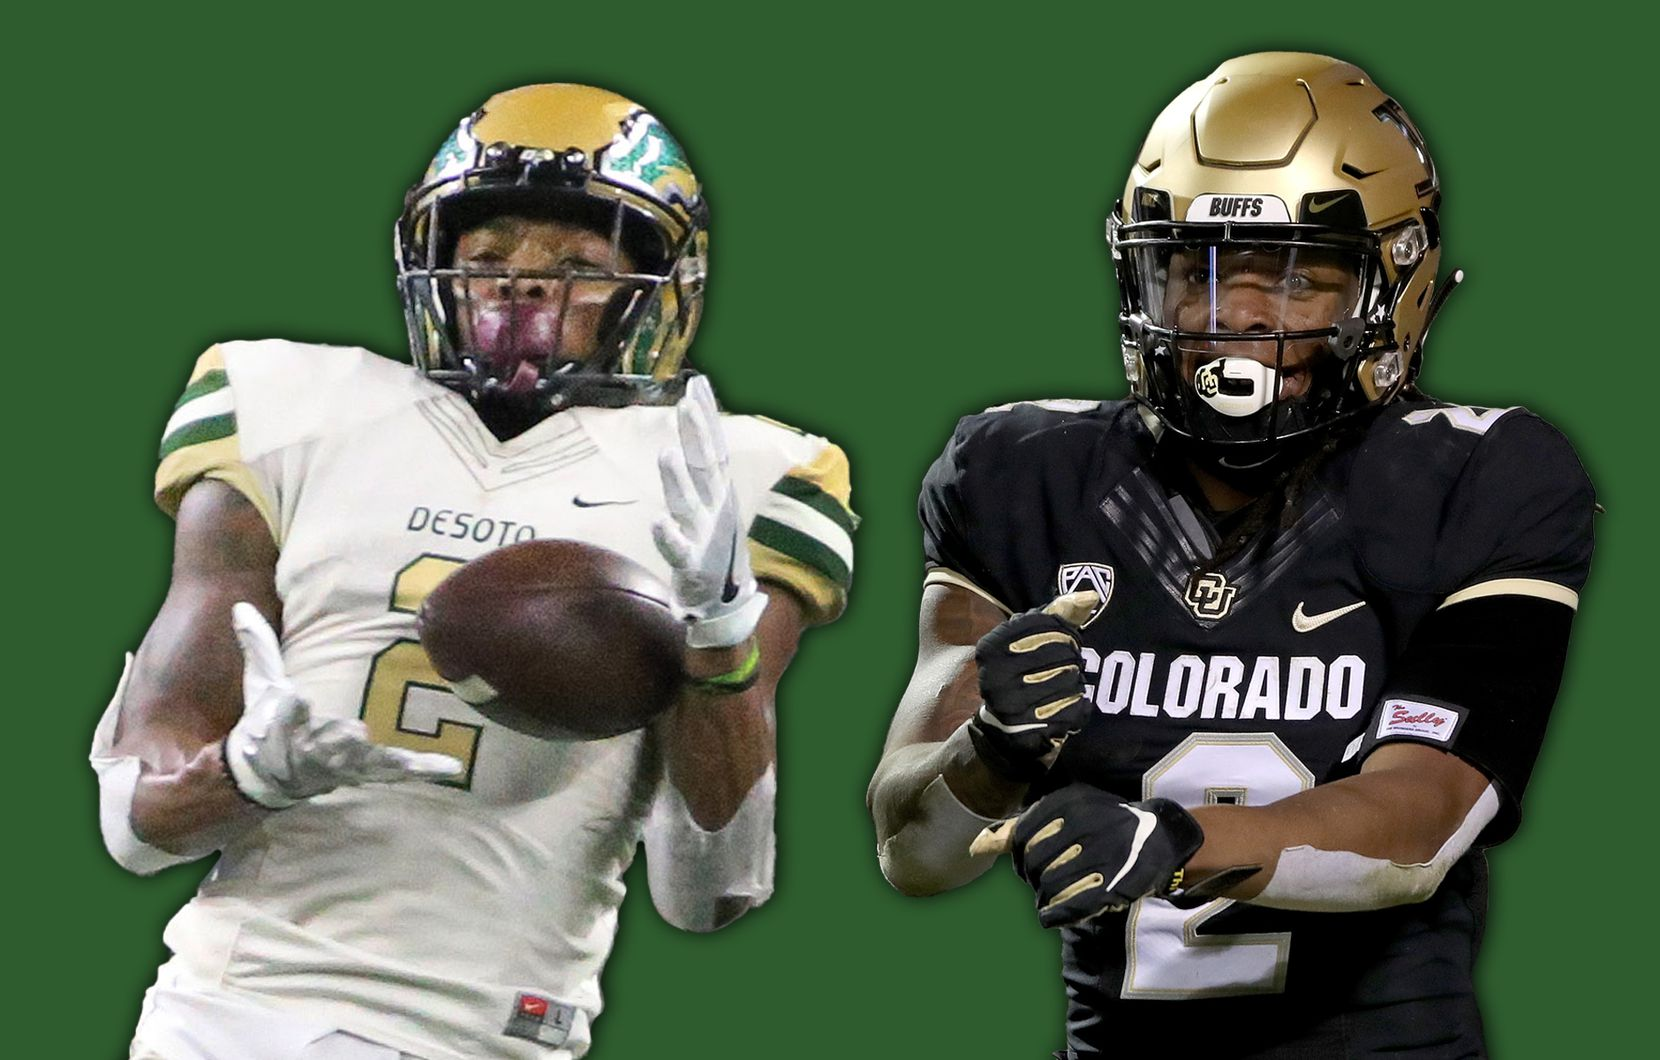 Laviska Shenault Jr. with DeSoto in 2016 (left) and Colorado in 2019 (right).